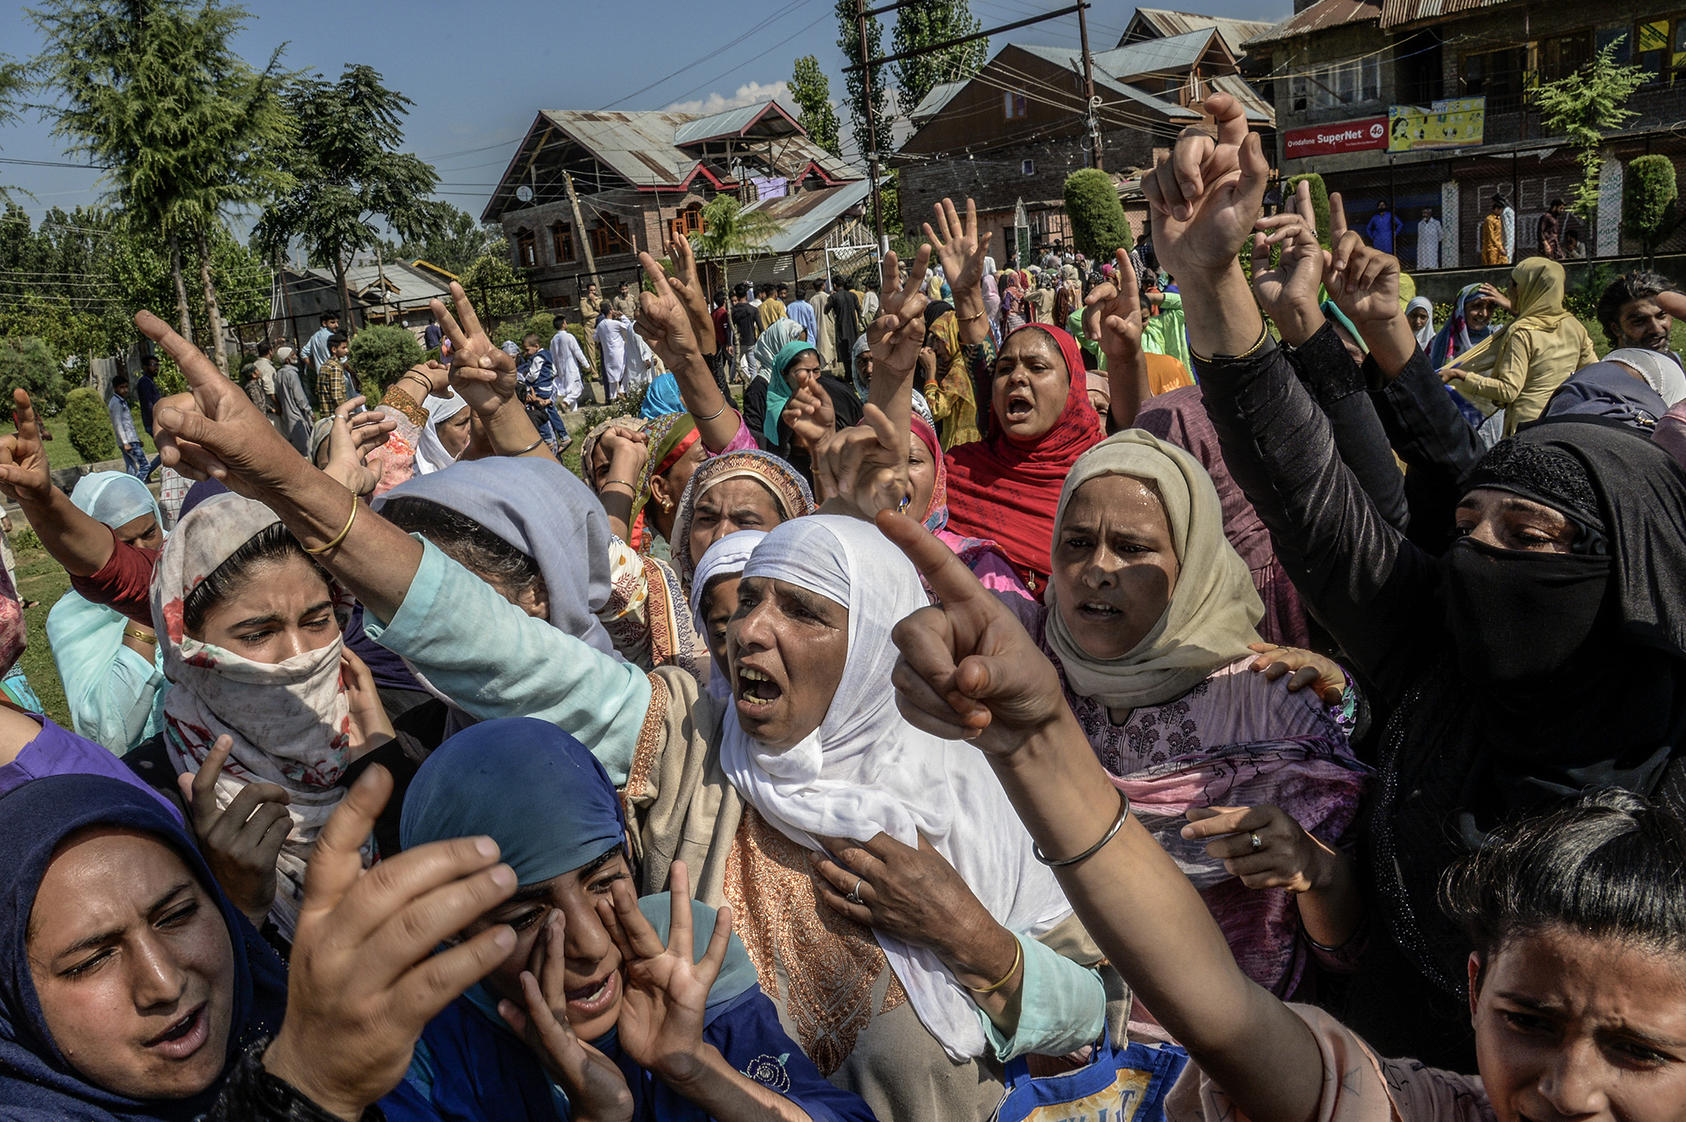 A protest against the ending of Kashmir's limited autonomy in Srinagar, India, Aug. 12, 2019. (Atul Loke/The New York Times)